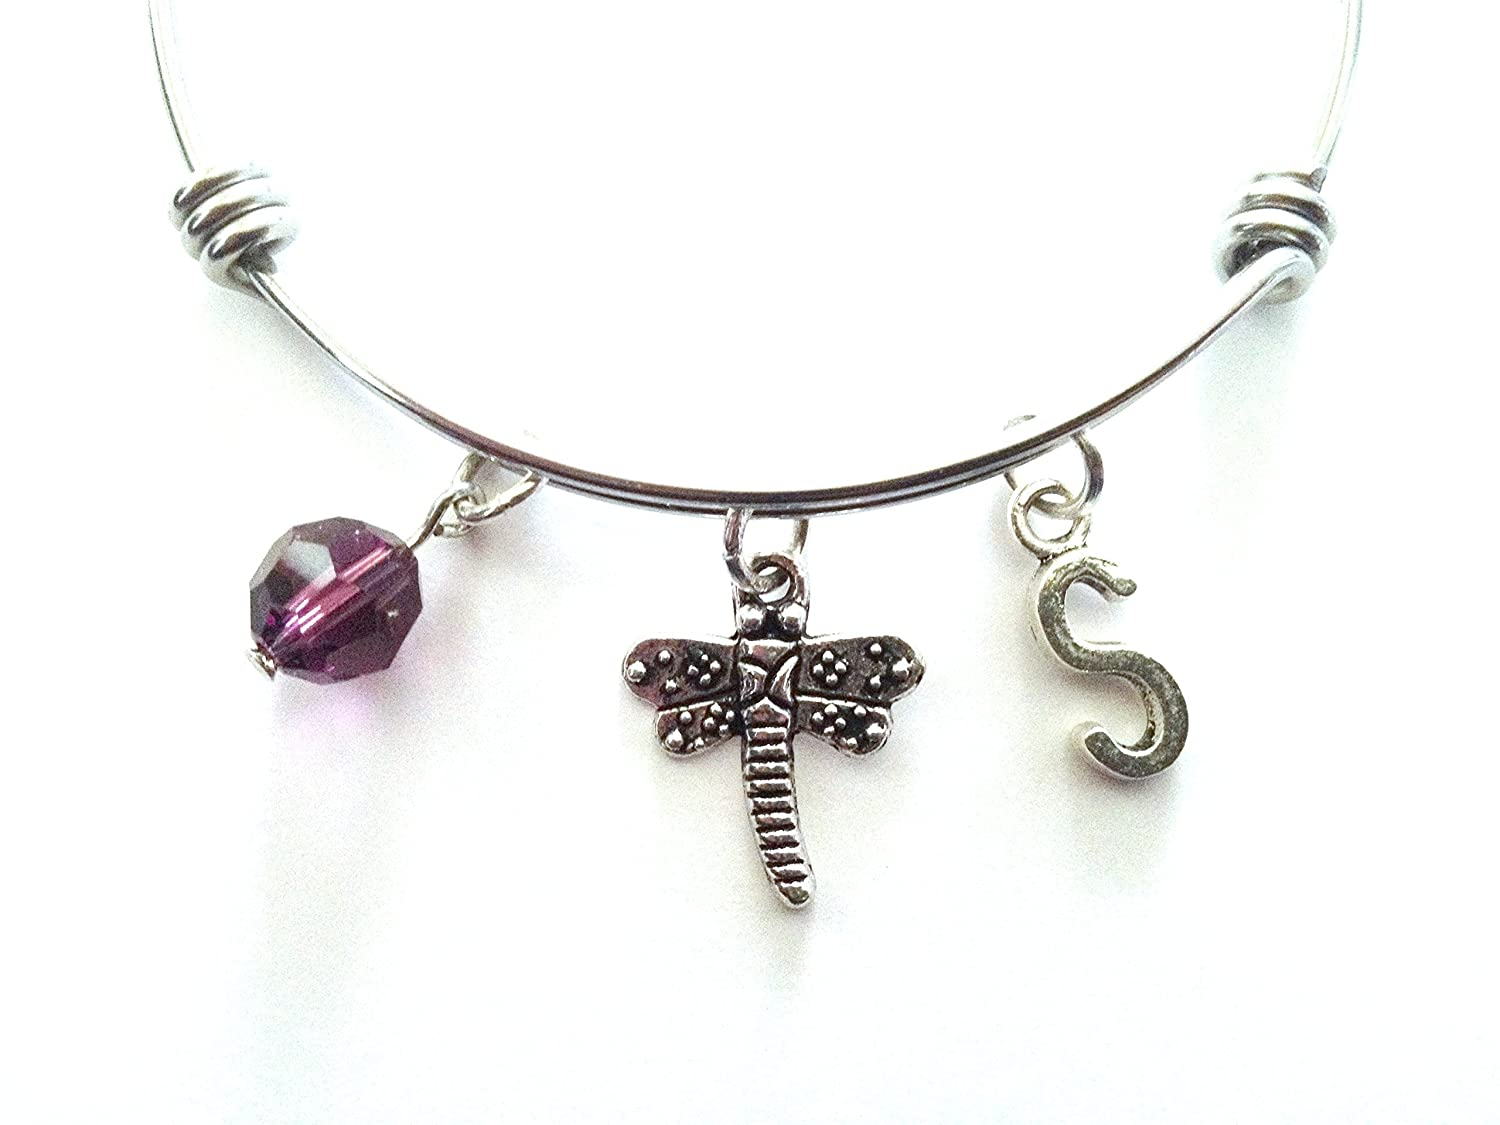 Dragonfly themed personalized bangle bracelet. Antique silver charms and a genuine Swarovski birthstone colored element.